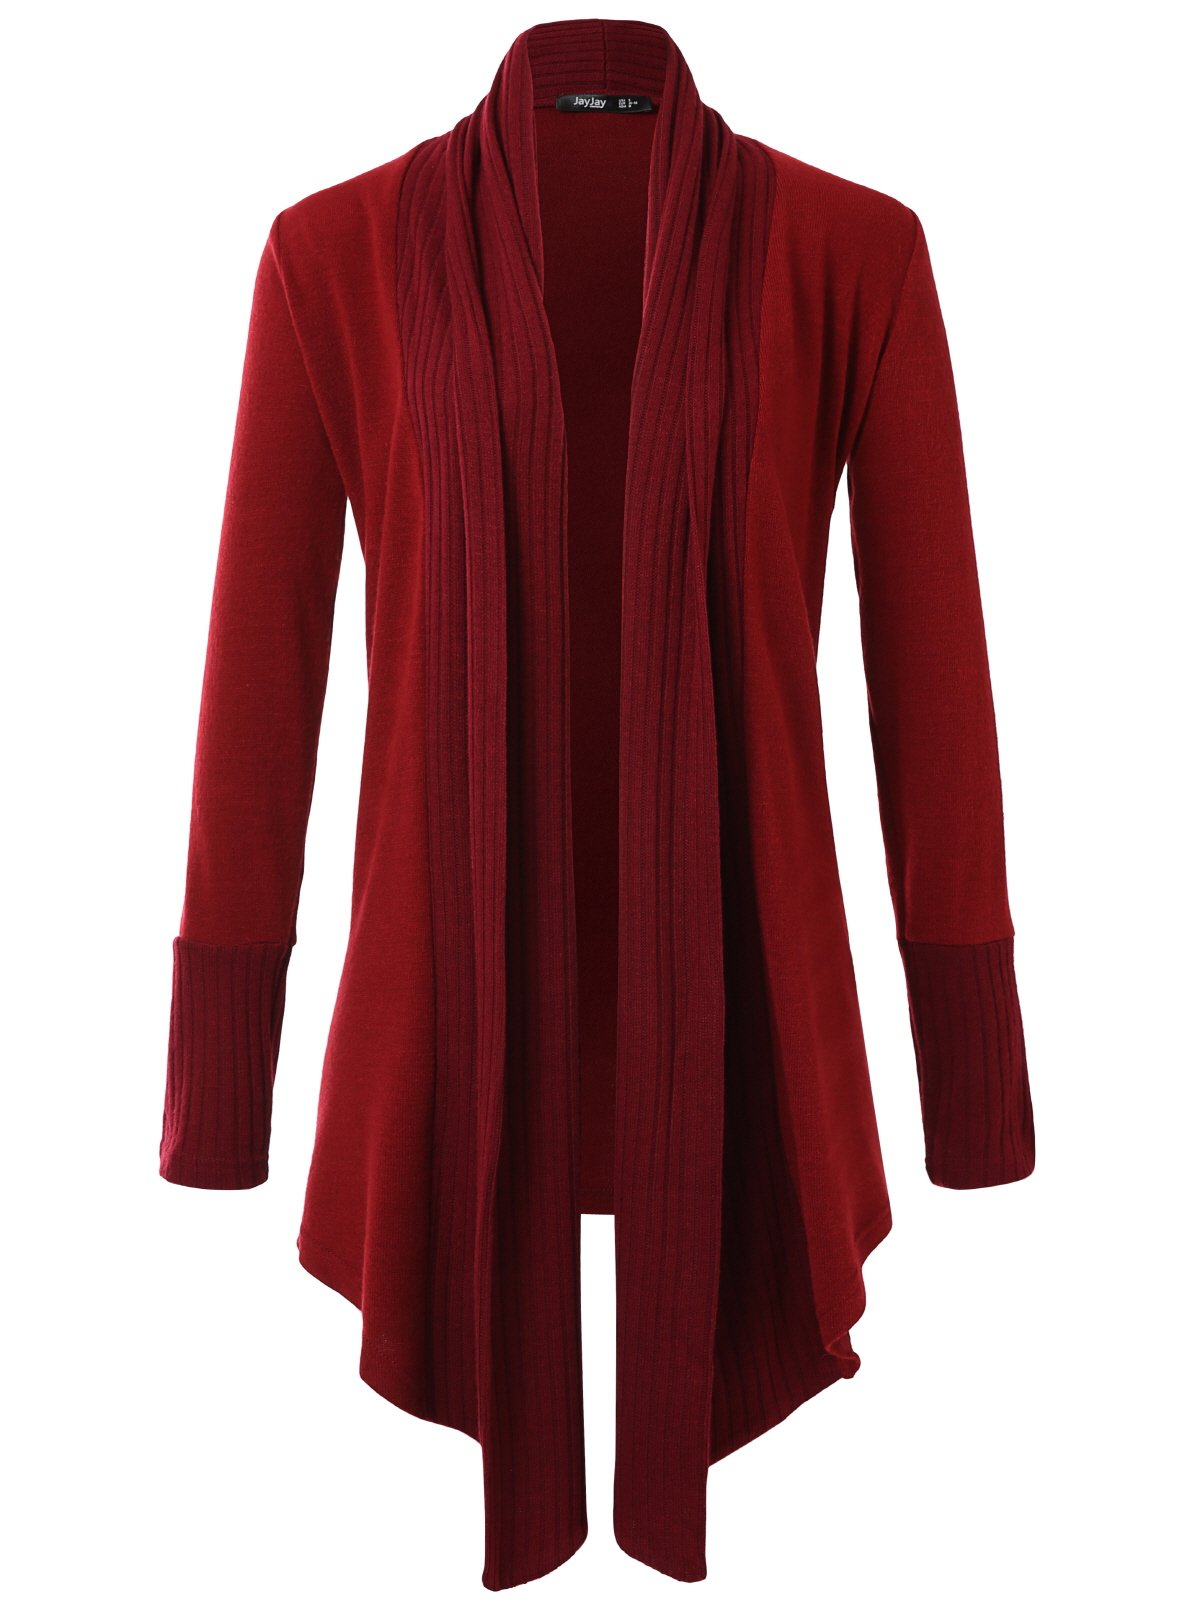 JayJay Women Boyfreind Loose Fit Long Sleeve Open Shawl Long Sweater Cardigan,Wine,2XL